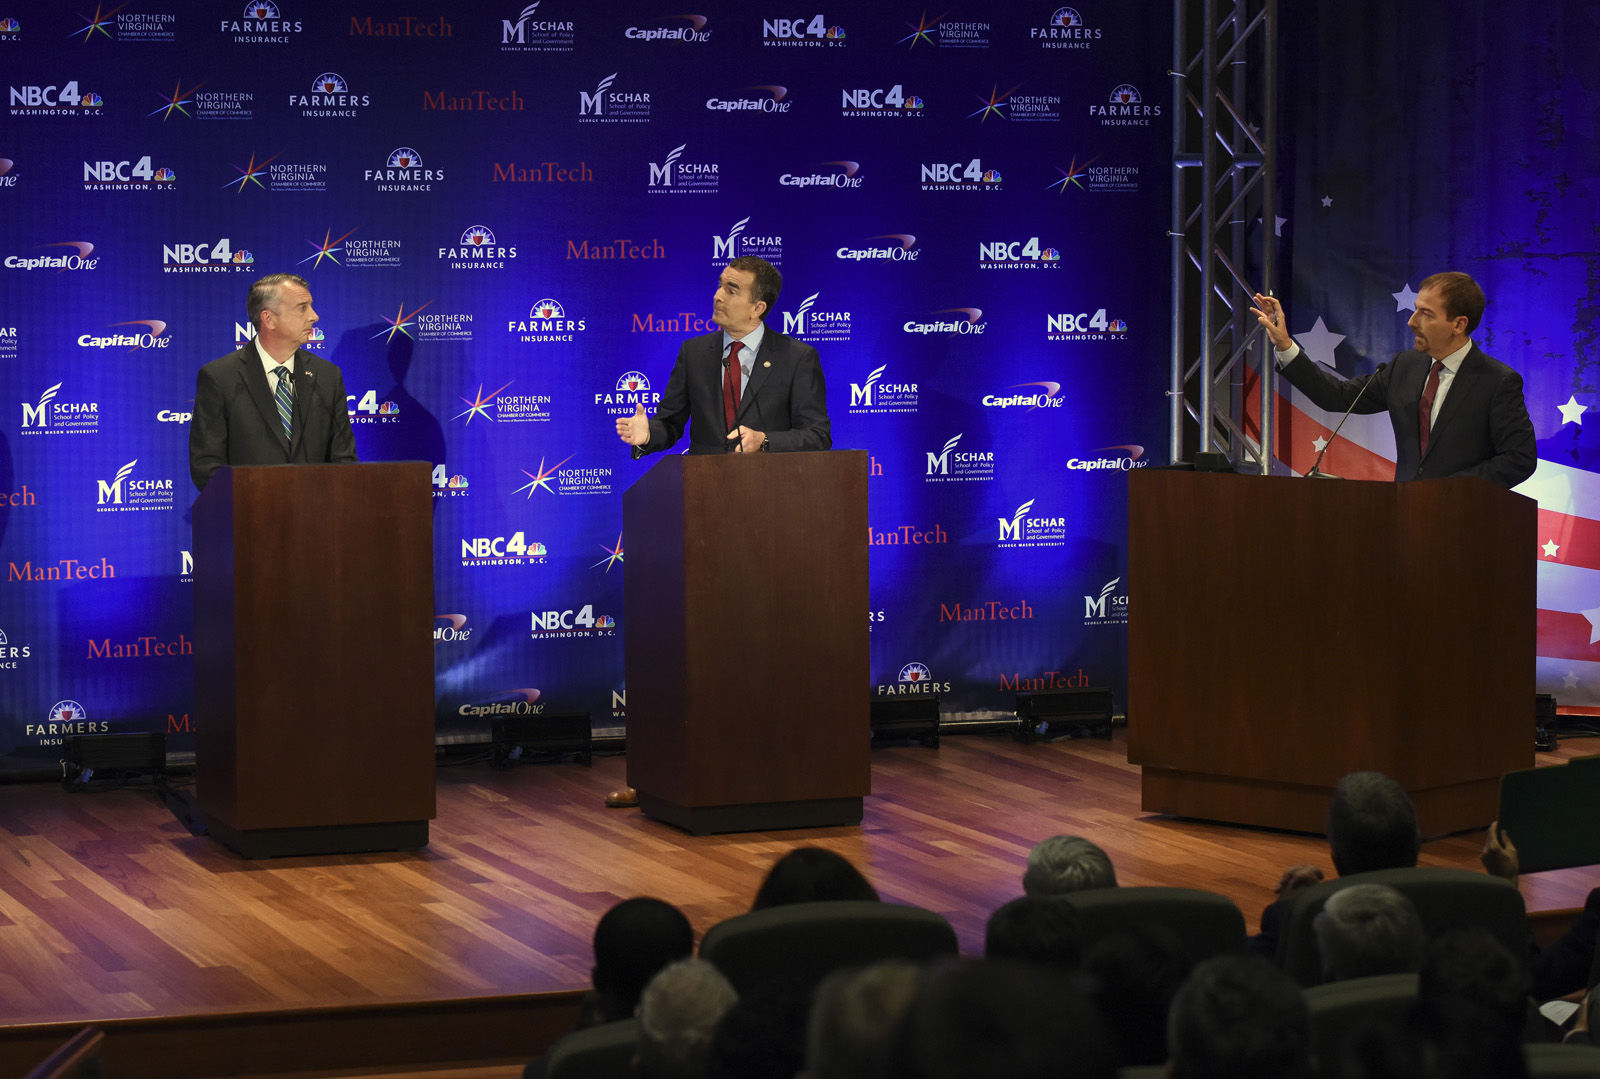 MCLEAN, VA - SEPTEMBER 19: Gubernatorial debate between Republican candidate Ed Gillespie, left, and Lt. Gov. Ralph Northam, Democrat, moderated by NBC newsman Chuck Todd, right, on September, 19, 2017 in McLean, VA. (Pool Photo by Bill O'Leary/The Washington Post)